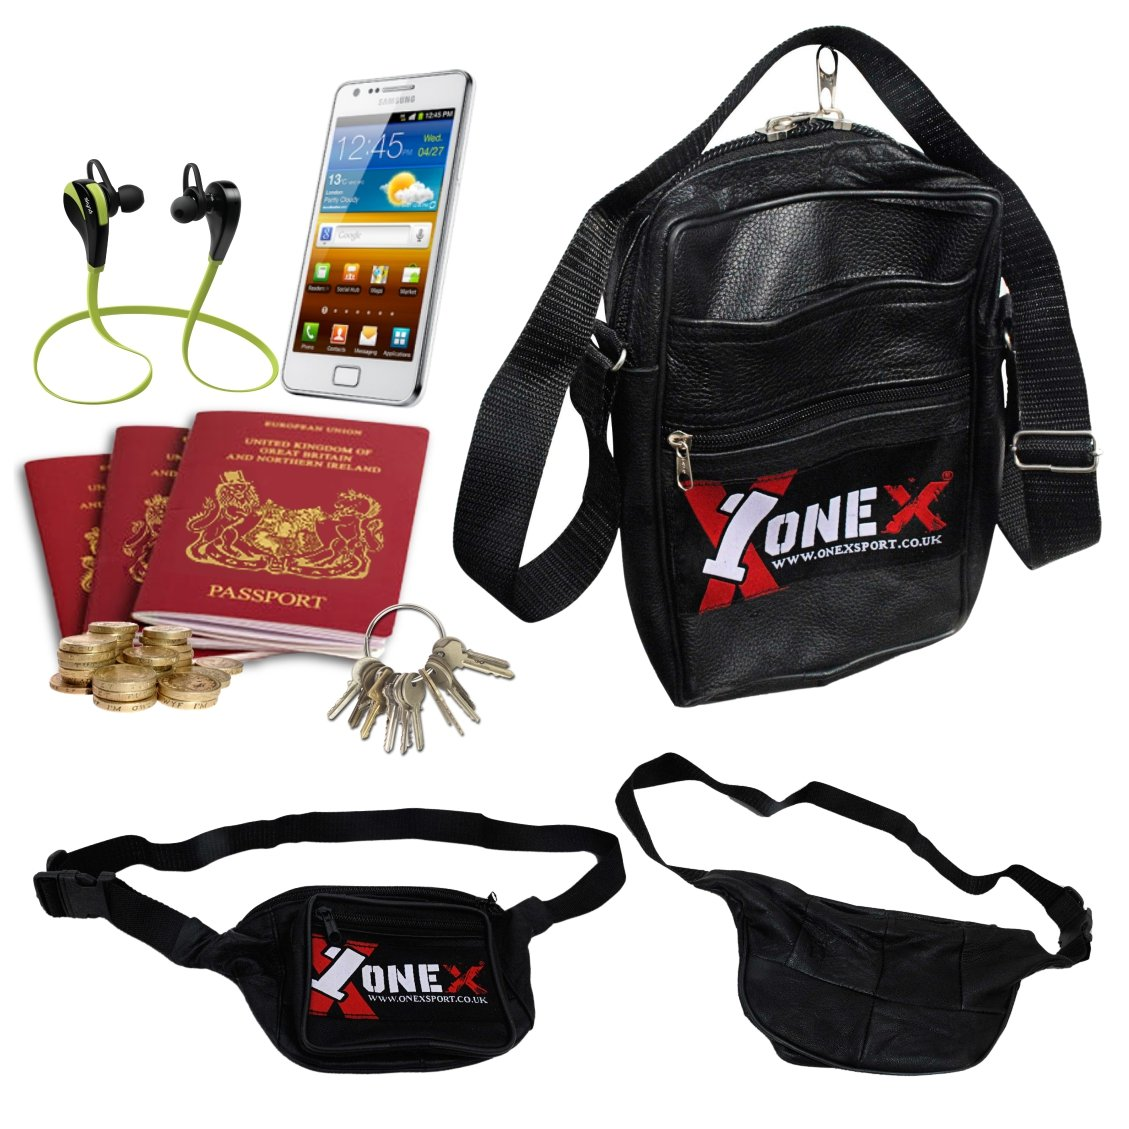 a6d63f5d0be Onex Black Canvas Bum bag